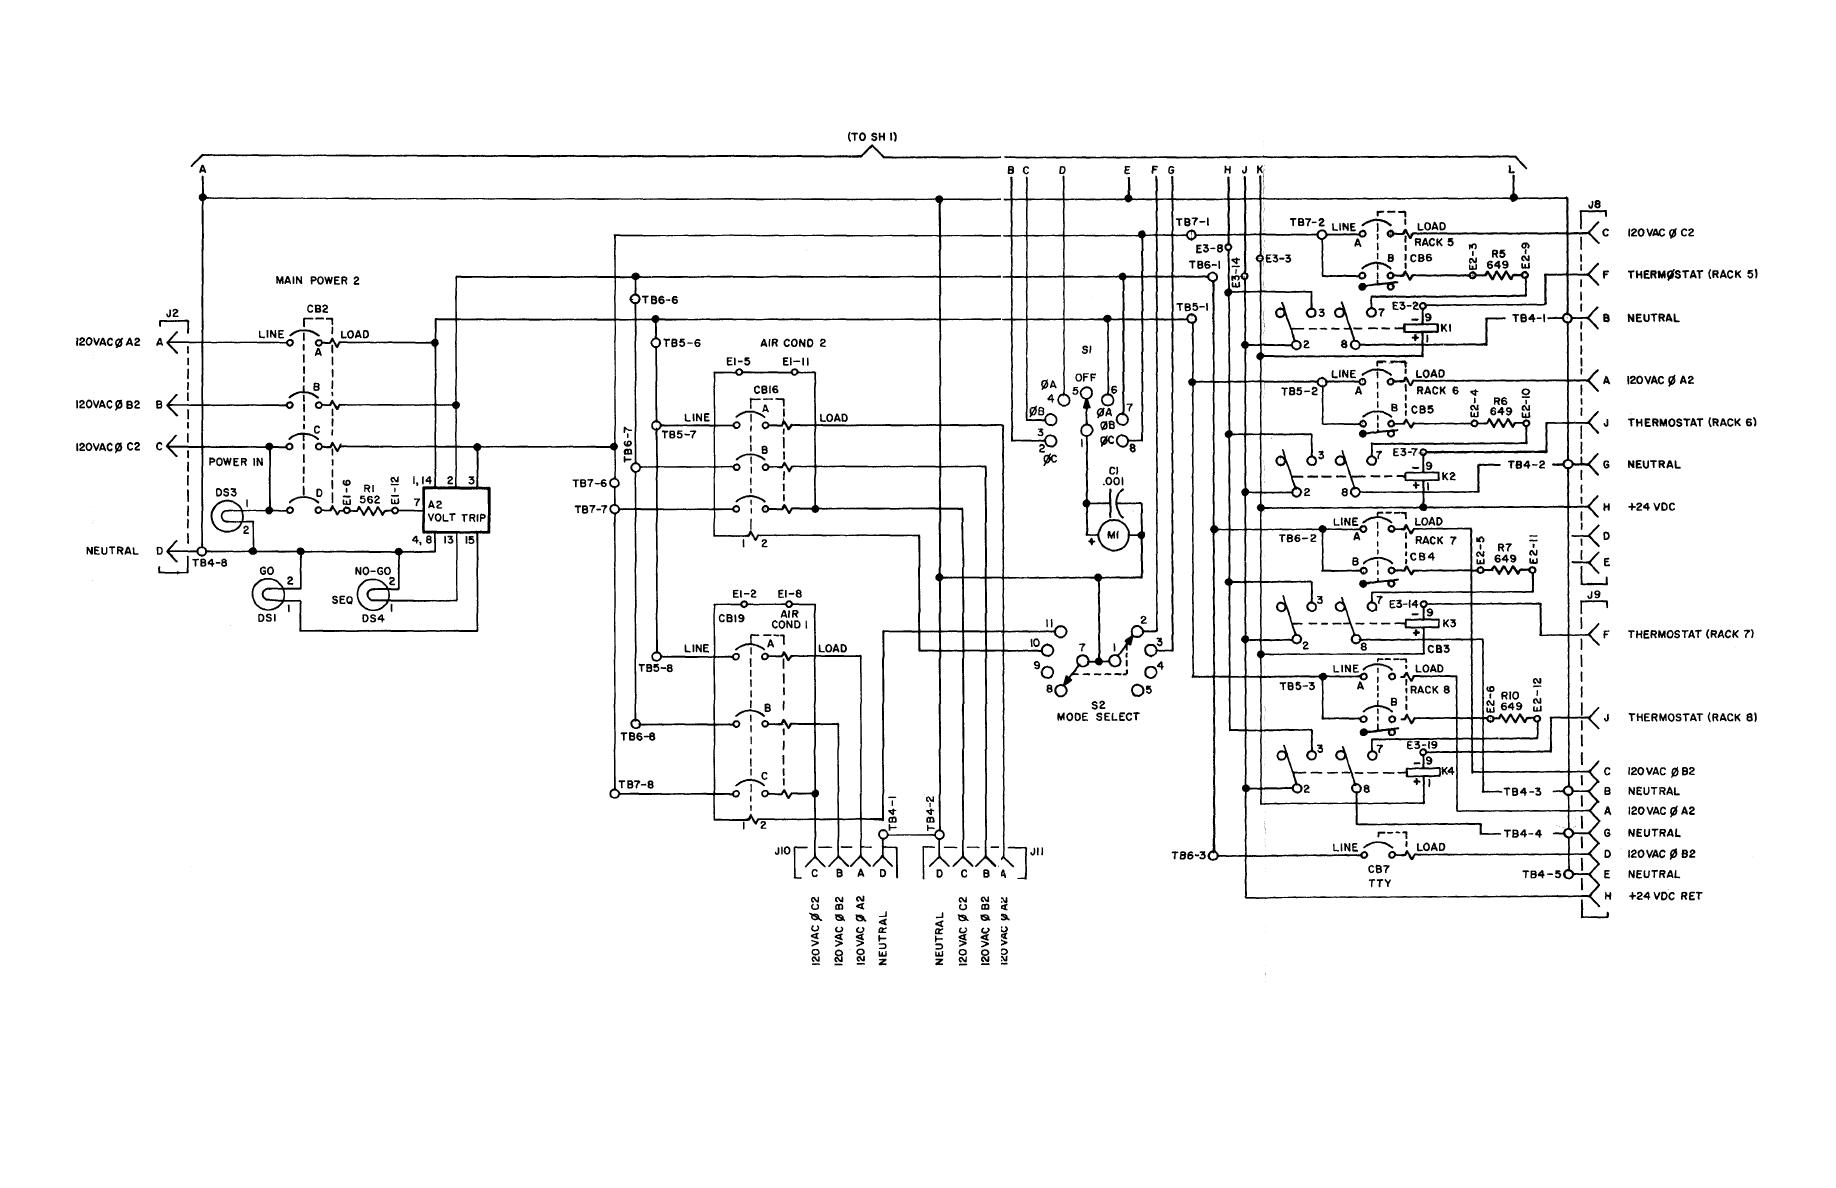 Distribution board wiring diagram pdf